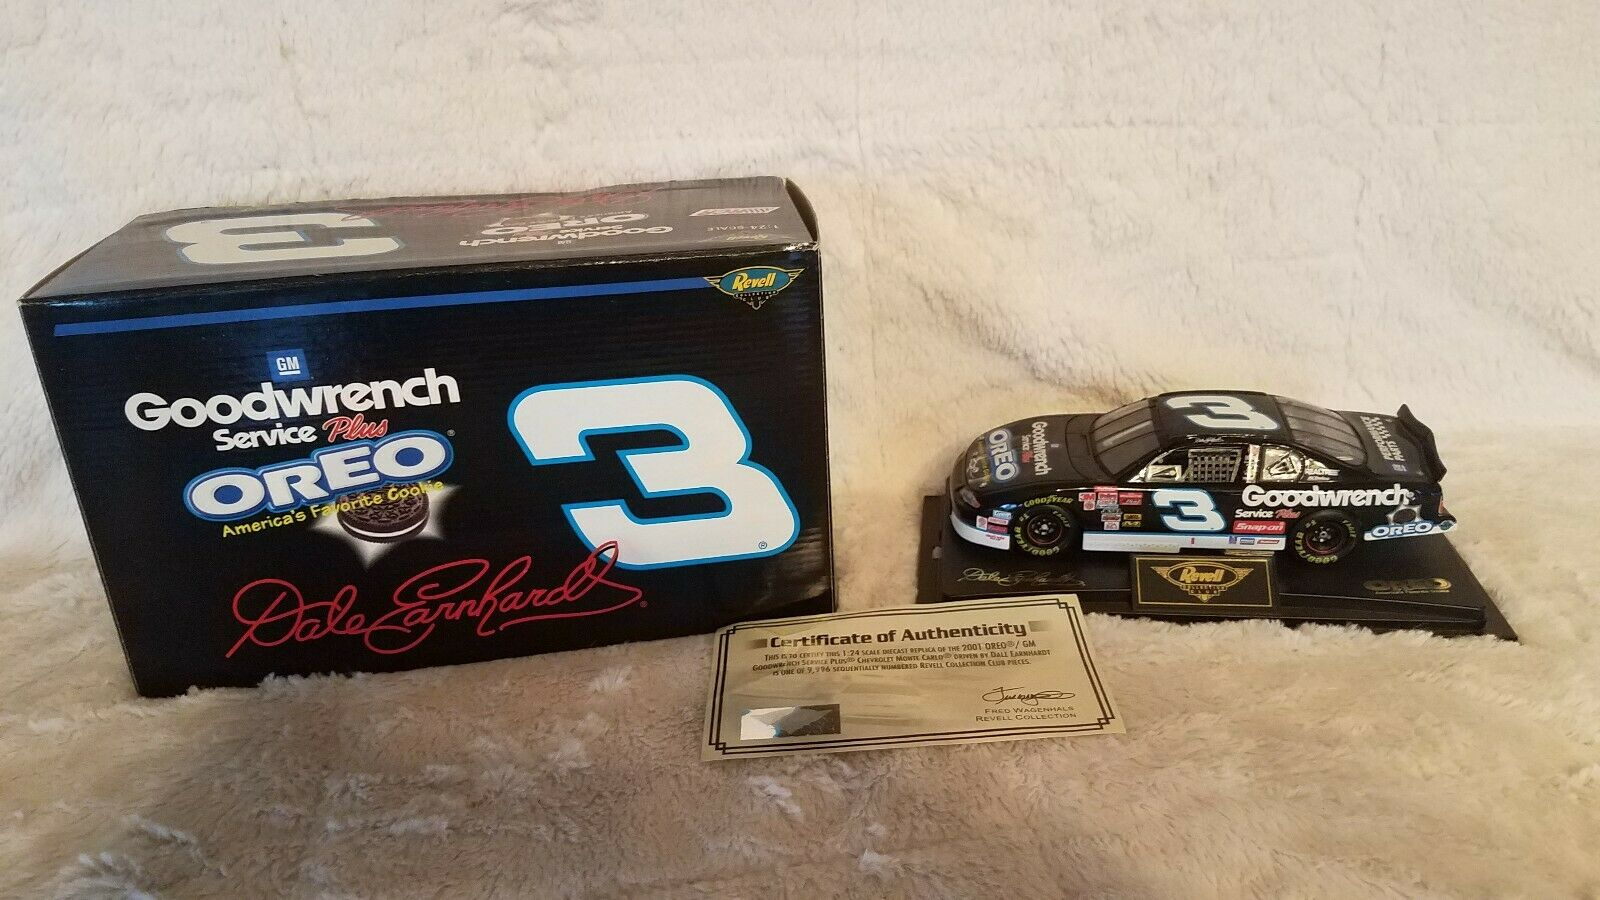 Dale Earnhardt Revell Collection Club 1 24  2001 Monte Carlo Daytona Car